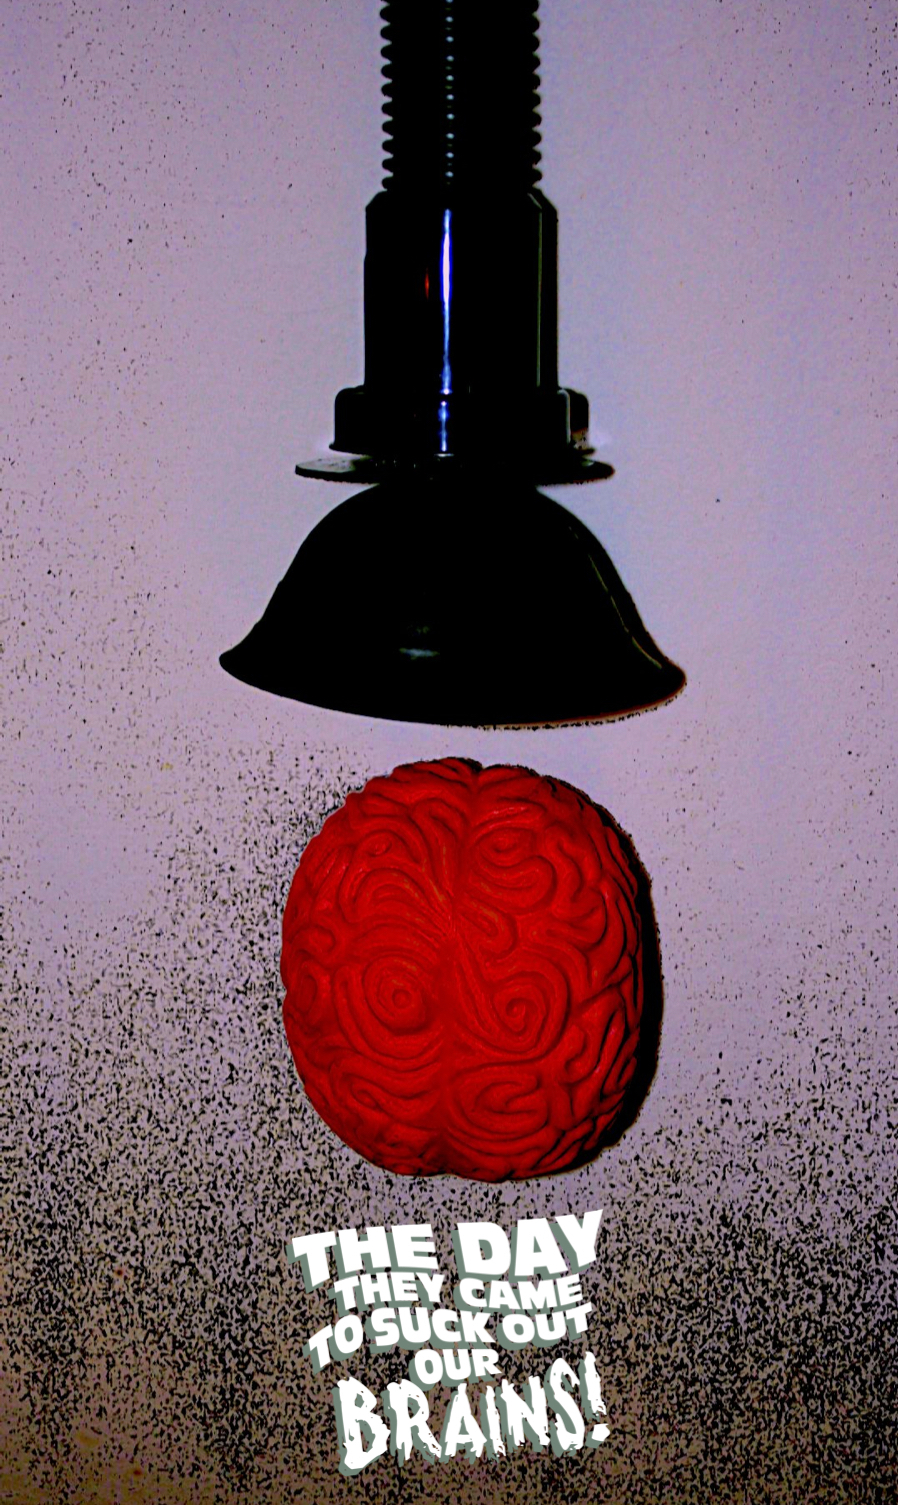 brains_poster_2 crop.jpg